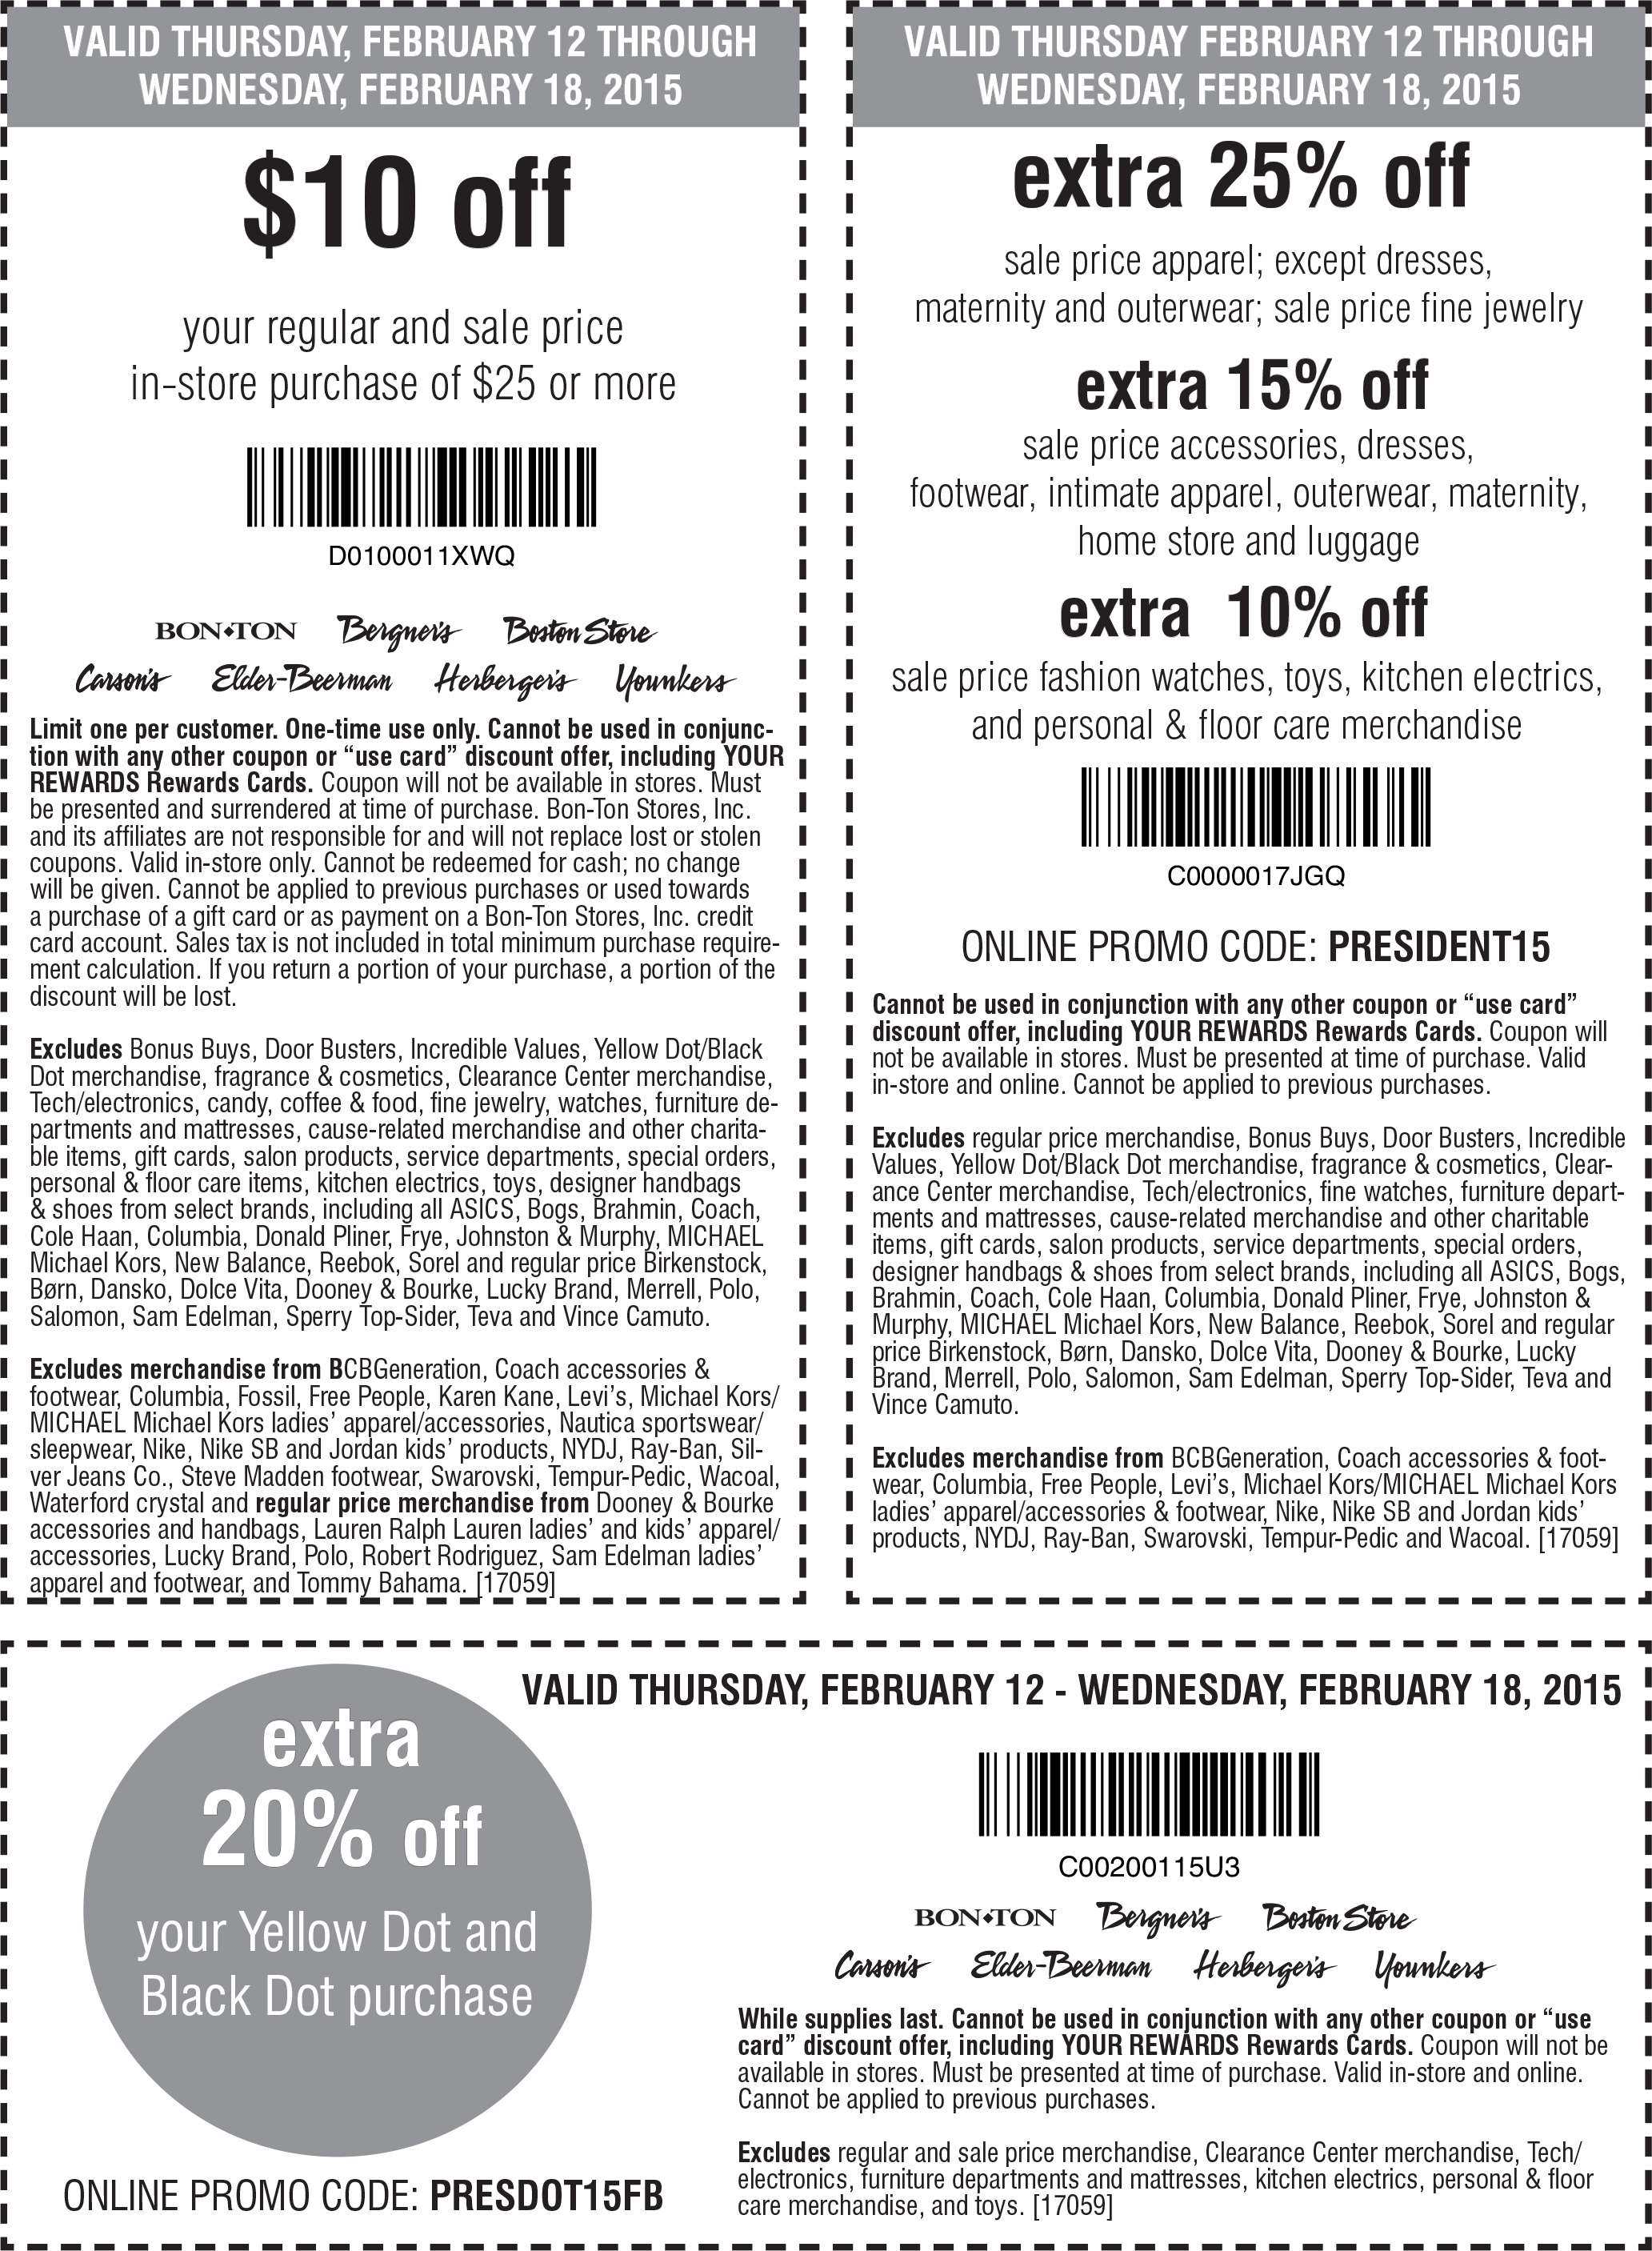 Carsons Coupon March 2017 $10 off $25 & more at Carsons, Bon Ton & sister stores, or 25% off sale apparel online via promo code PRESIDENT15